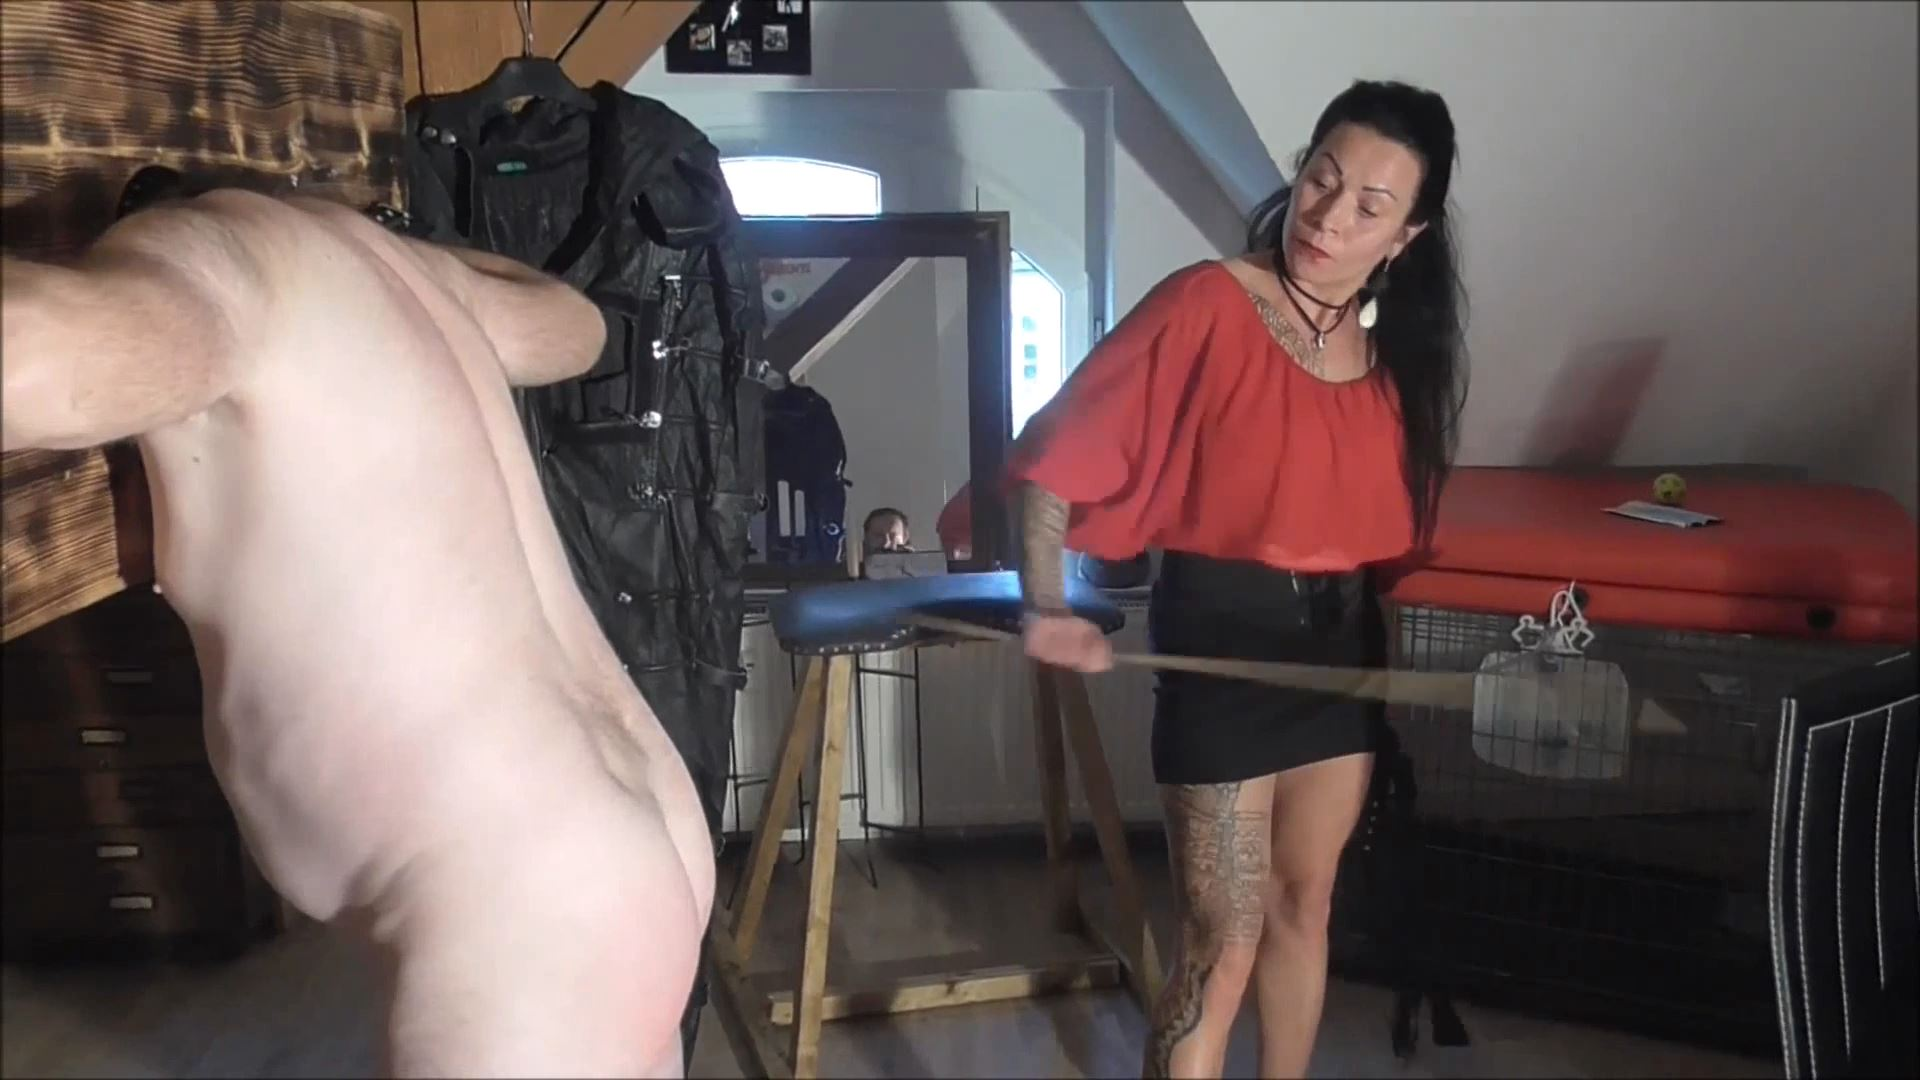 SENORA EL COMBATIENTE In Scene: WHAT SENORA LIKES IT ALL - DEUTSCHE DOMINAS / GERMANY FEMDOM - FULL HD/1080p/MP4